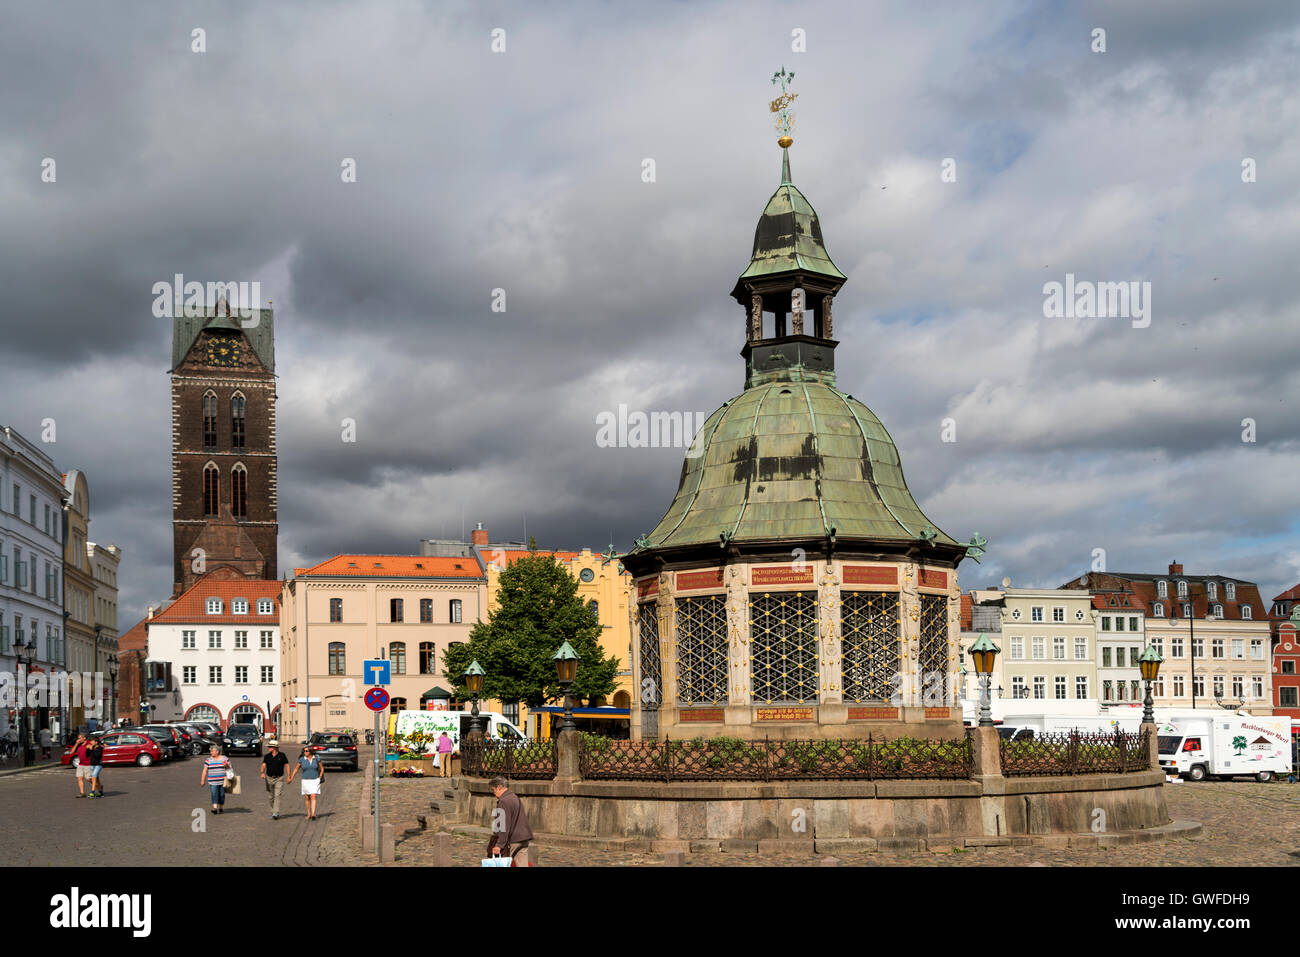 Market Square with the landmark waterworks or Wasserkunst and  St. Mary's Church tower, Hanseatic City of Wismar, - Stock Image